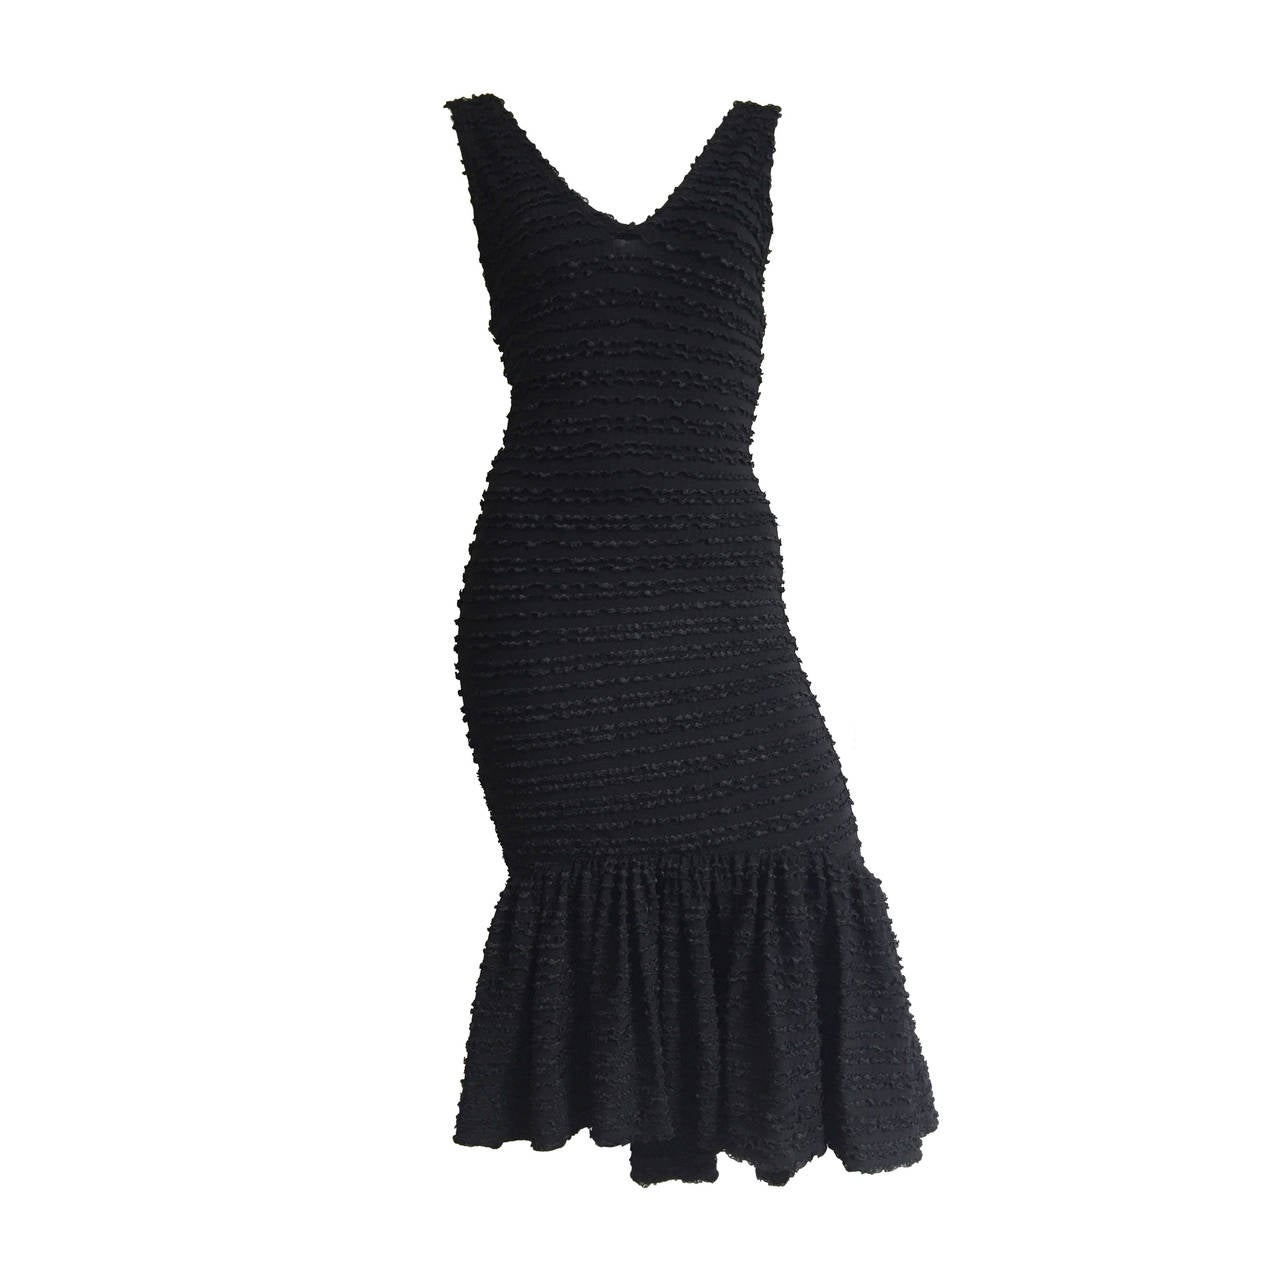 Patrick Kelly Paris 1986 Black Dress Size 4.